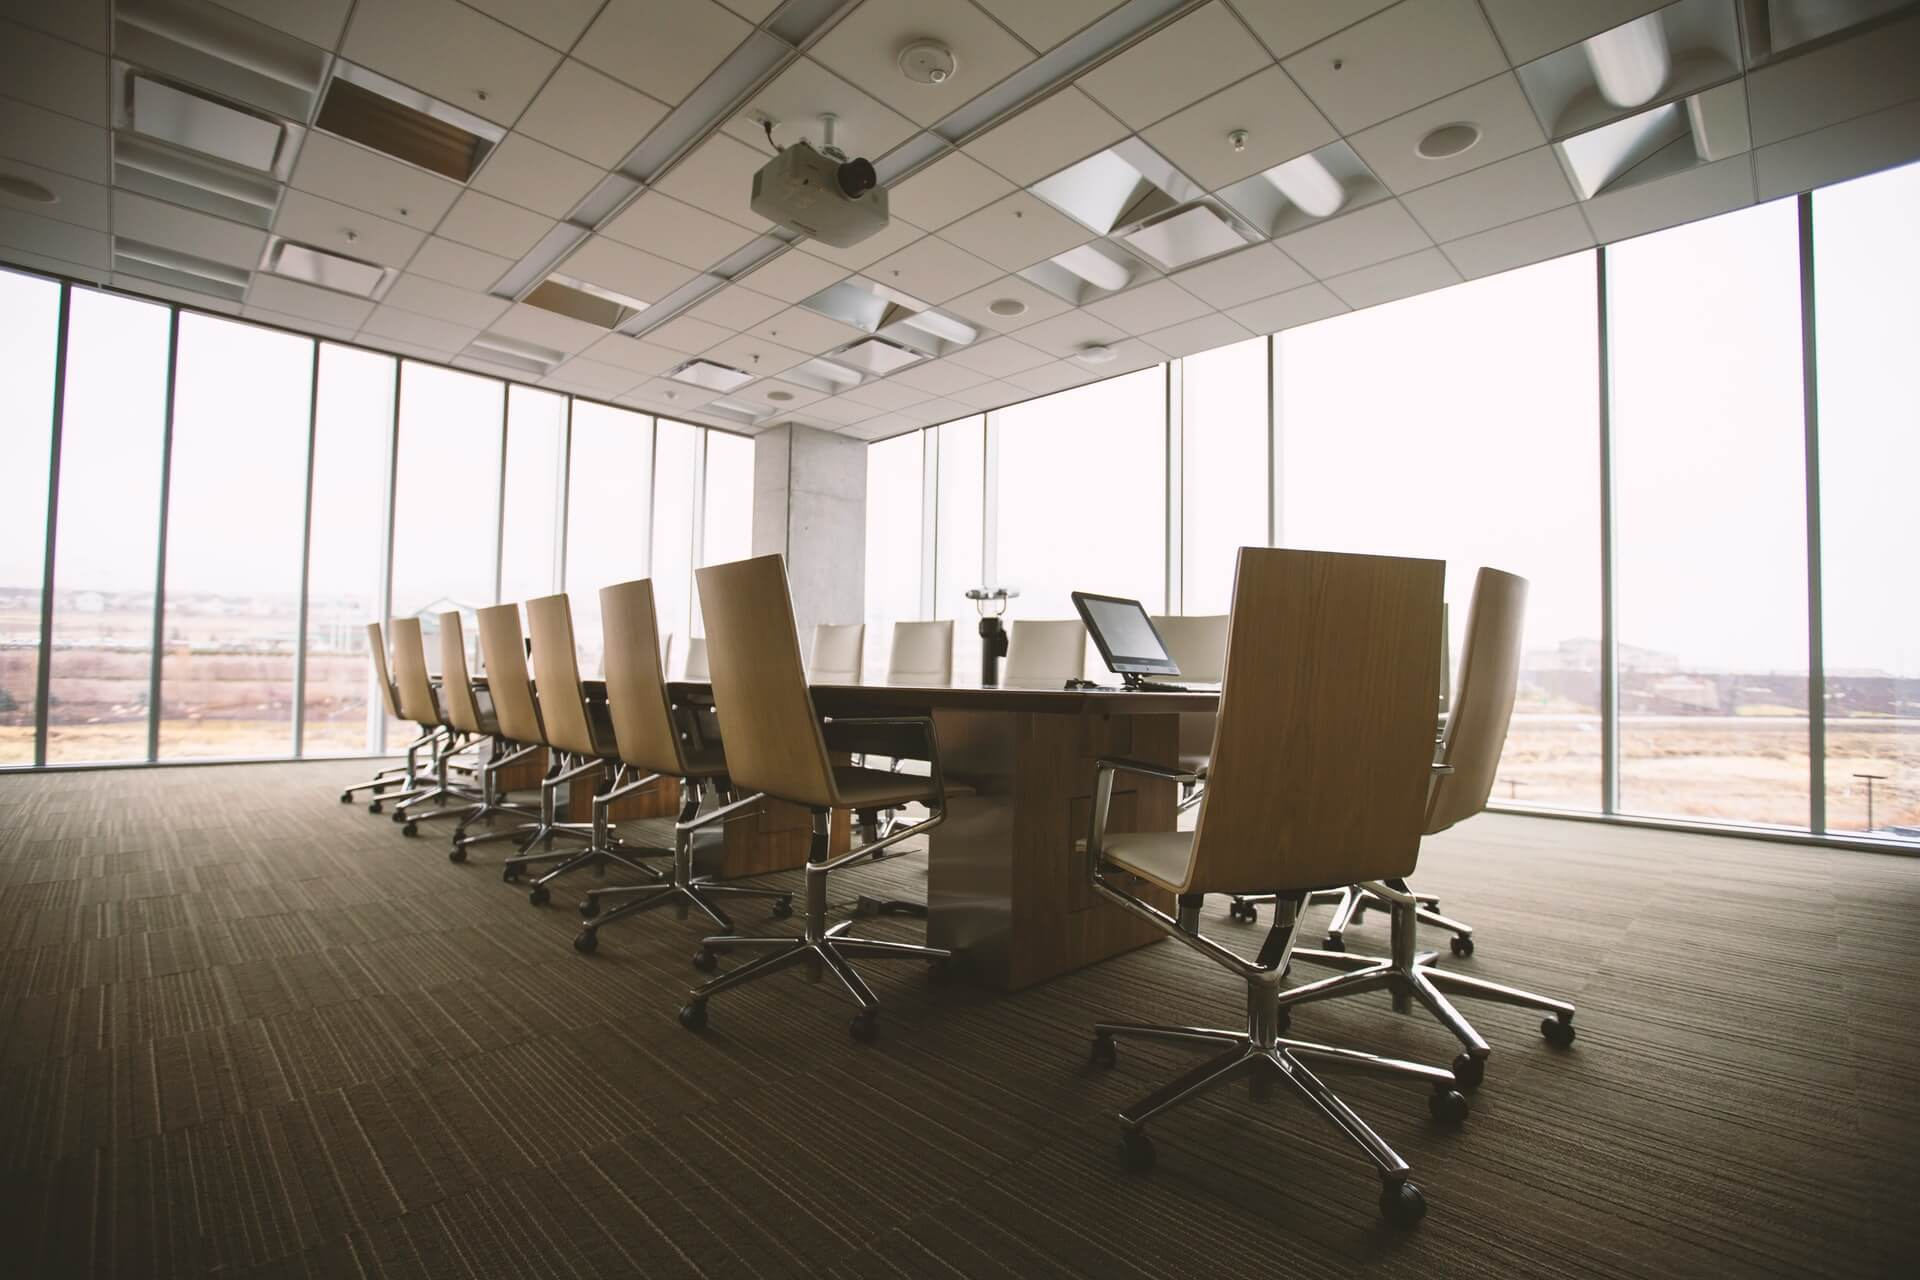 Empty Boardroom with 16 seats round a rectangular table